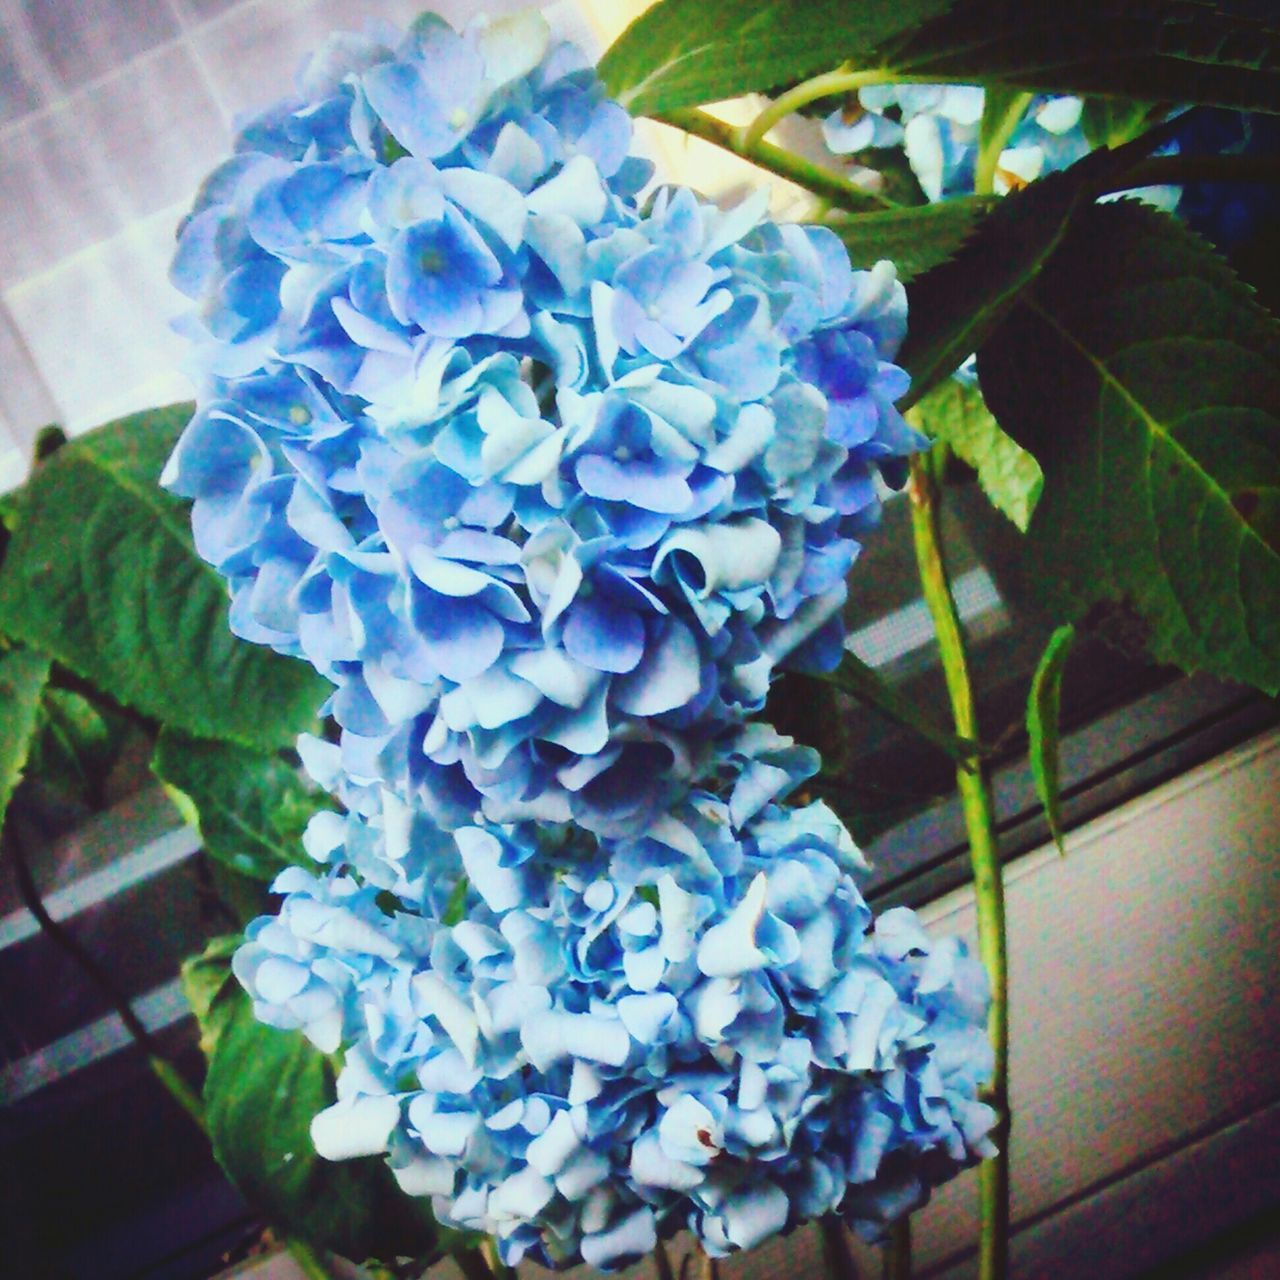 flower, fragility, petal, beauty in nature, growth, nature, freshness, plant, leaf, flower head, no people, close-up, hydrangea, day, indoors